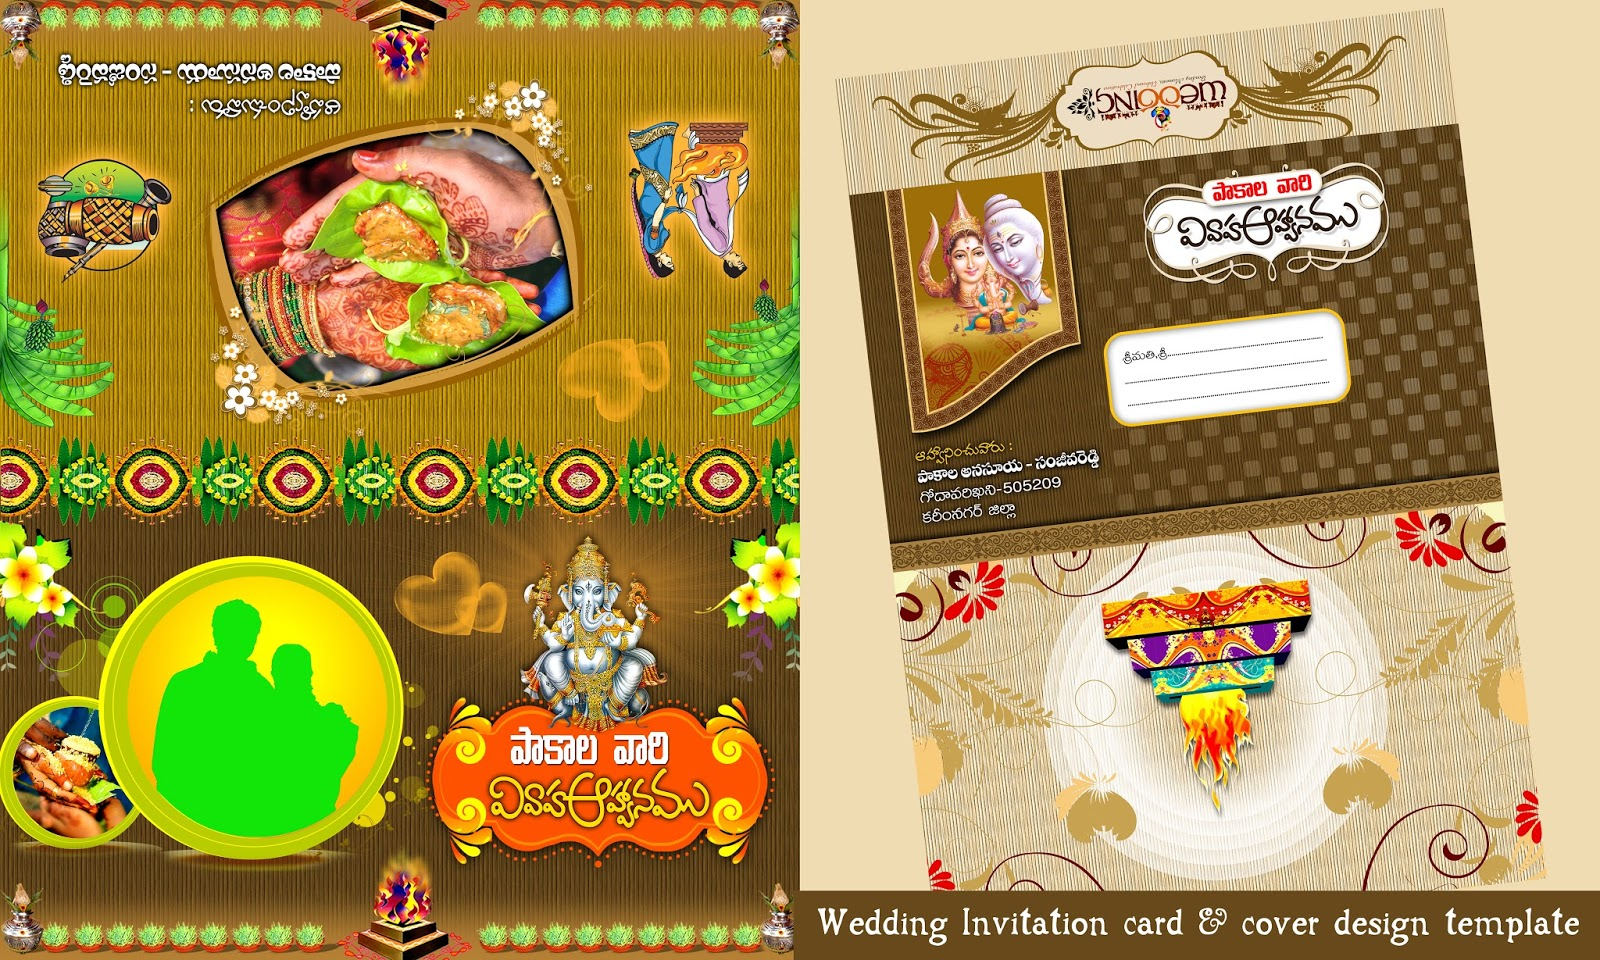 Wedding invitations card design psd template free download naveengfx indian wedding invitation card and cover design psd stopboris Image collections